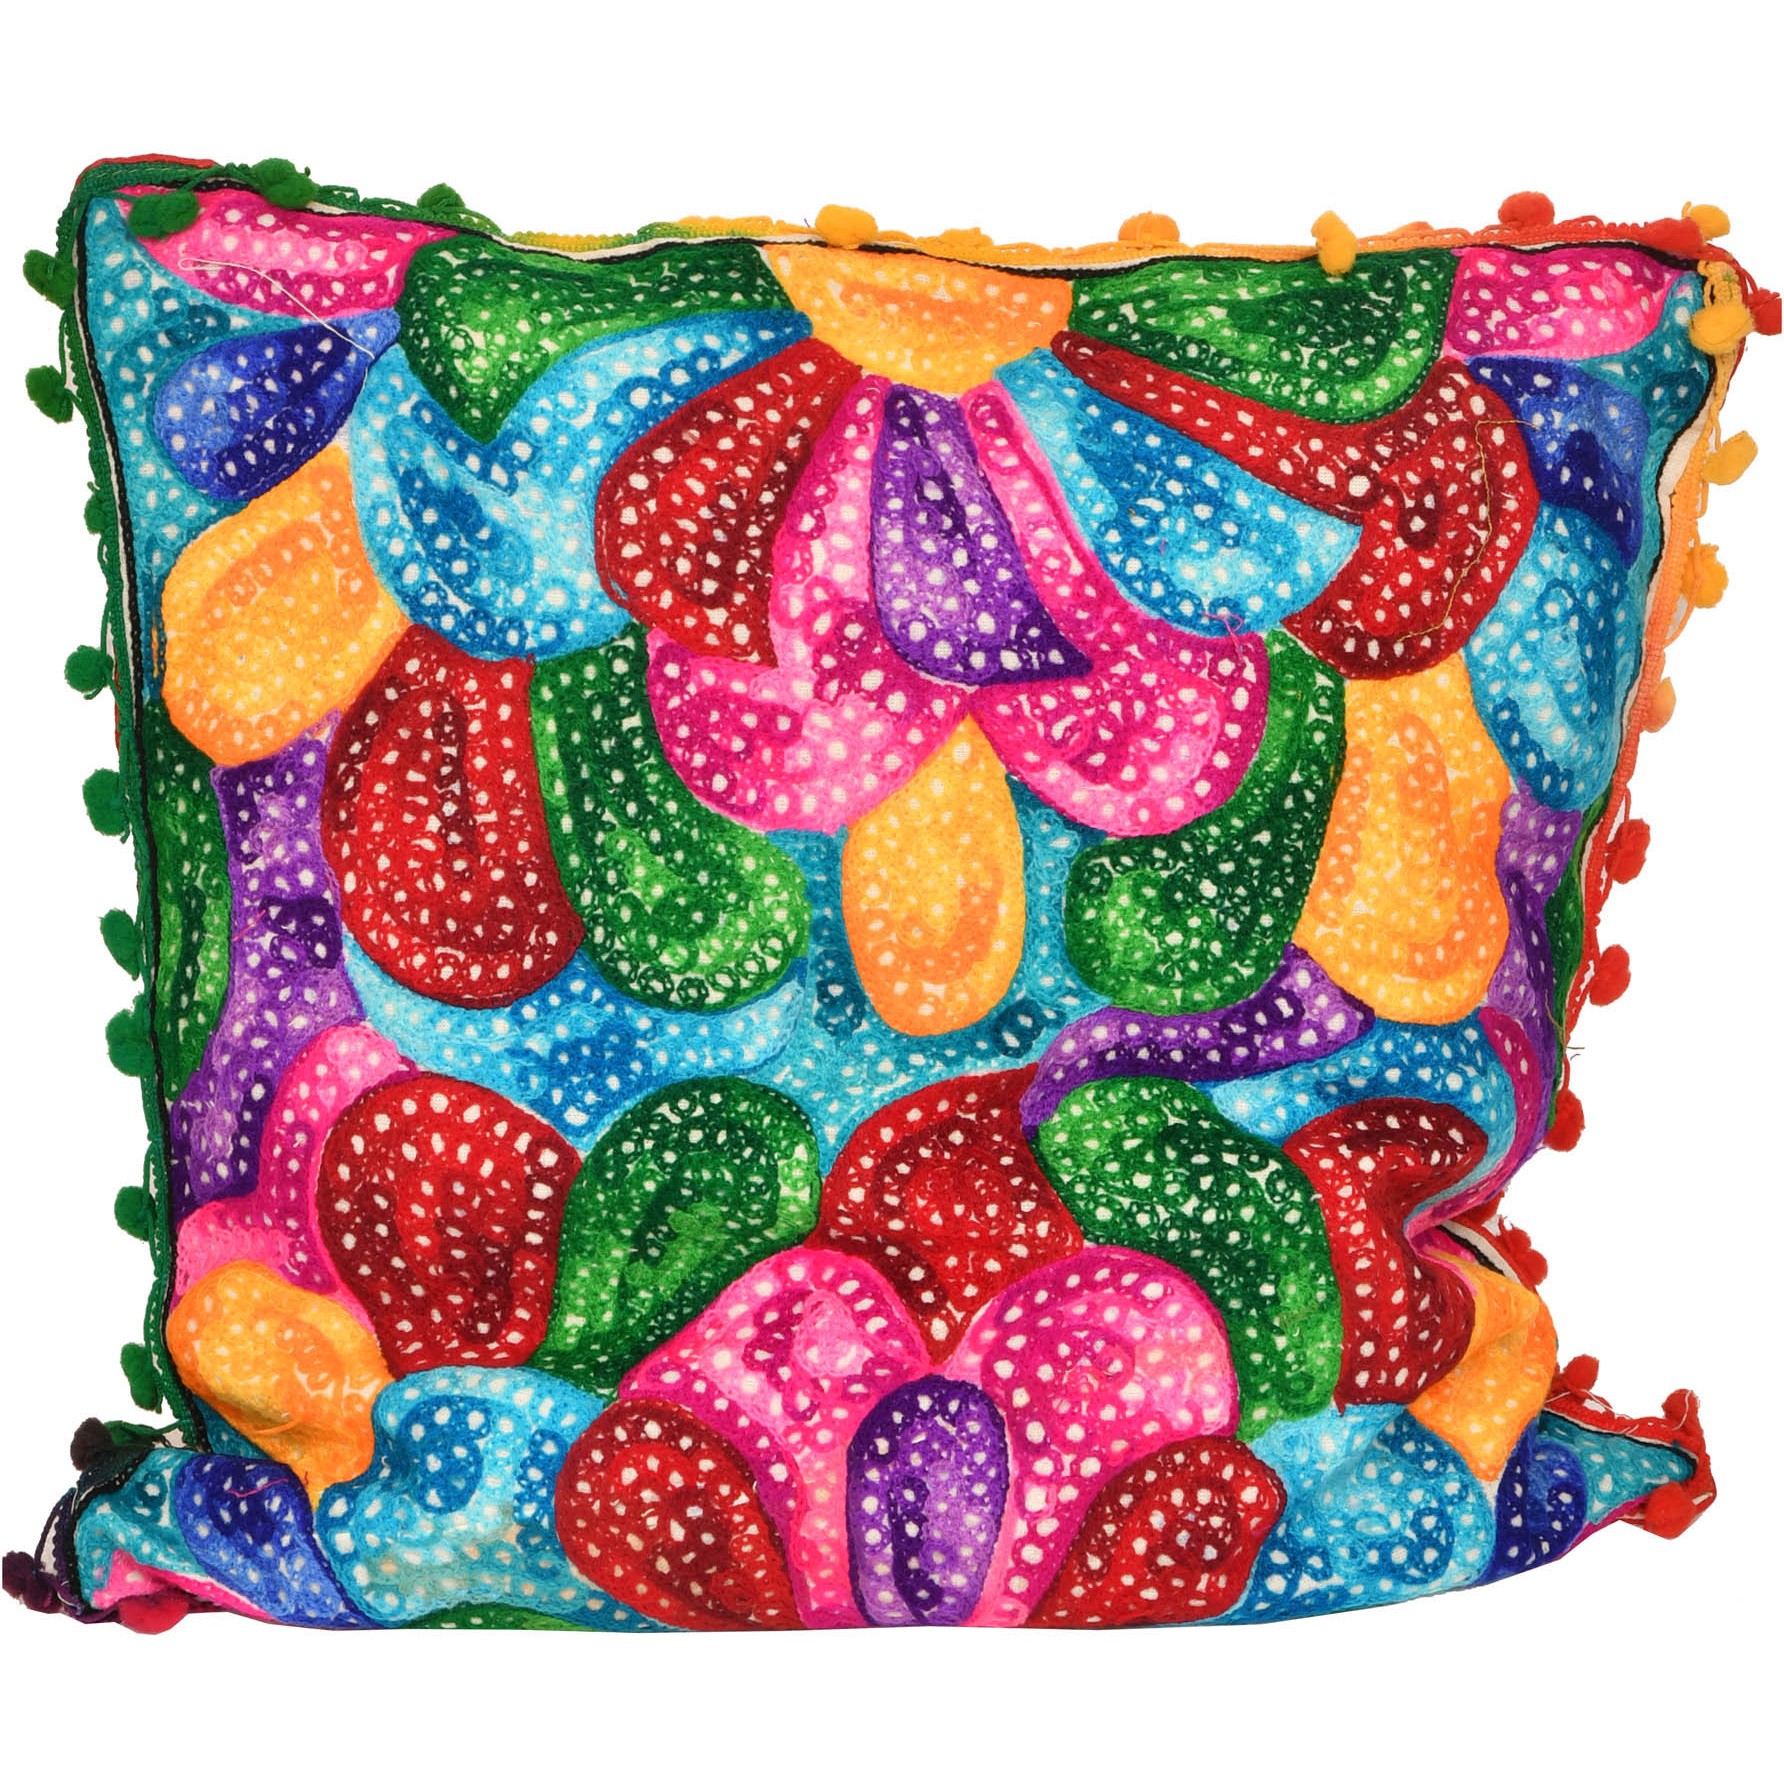 Muticolored Ari-Embroidered Cushion Cover